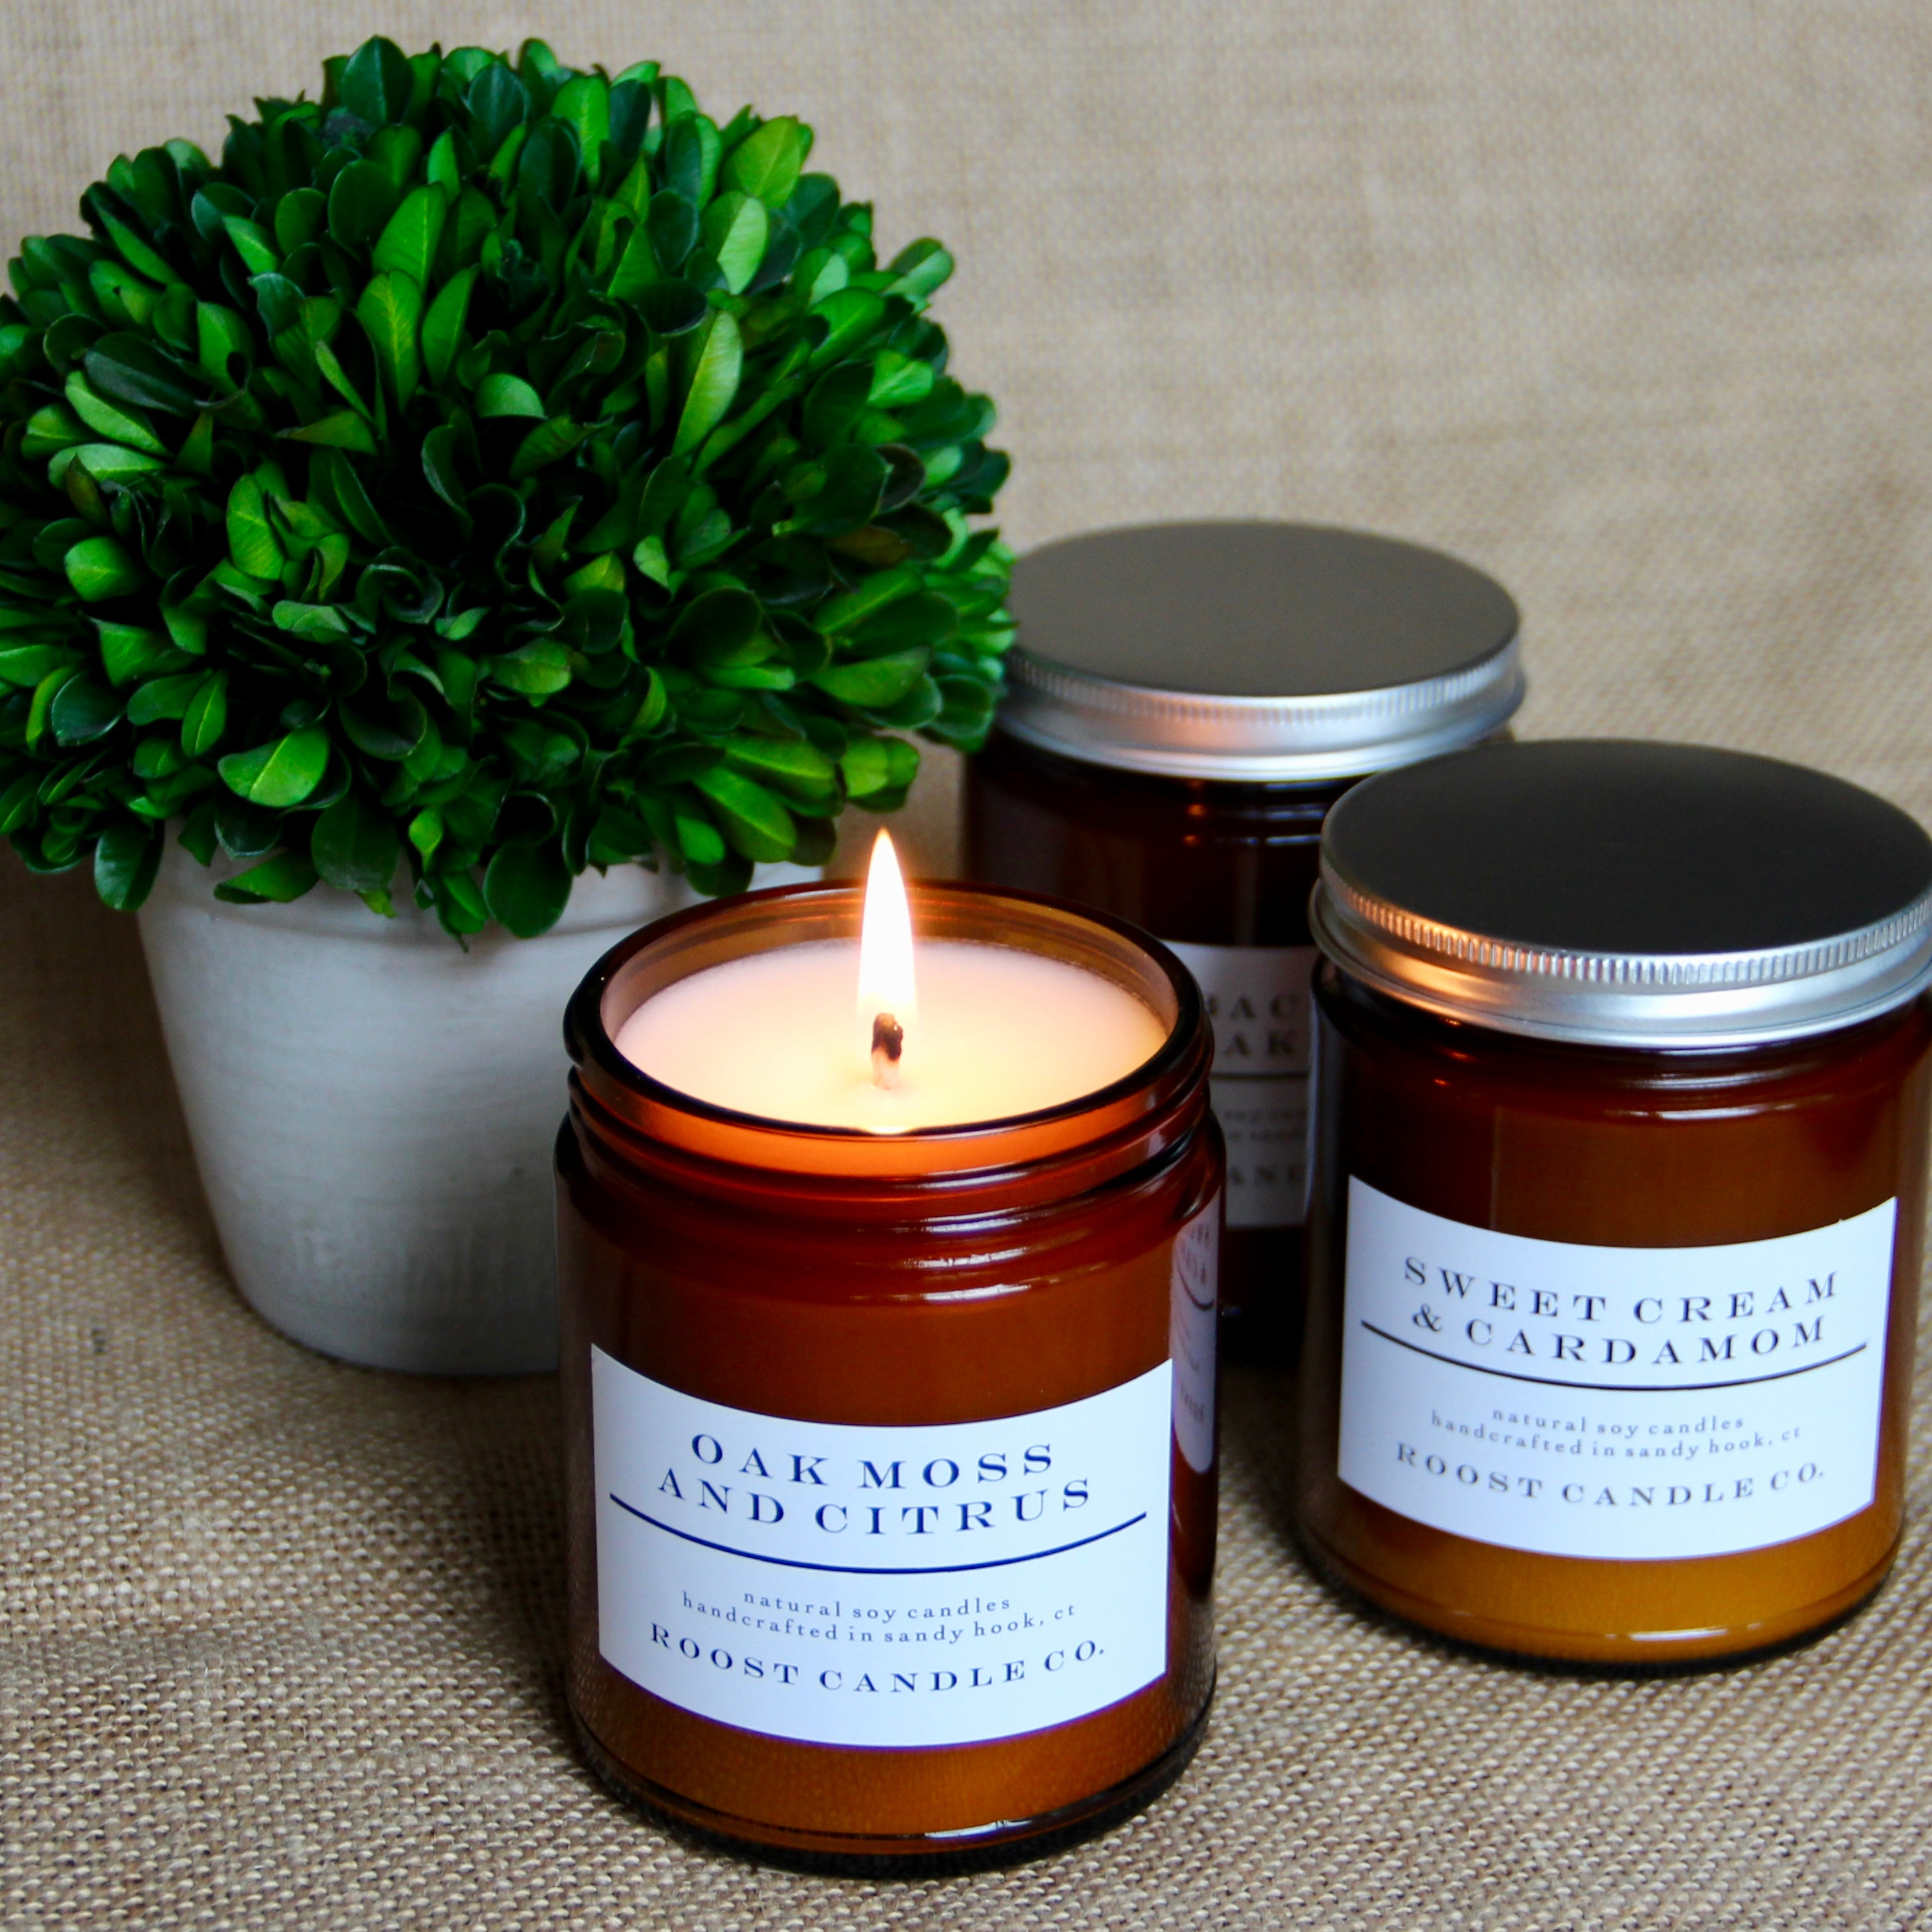 Oak Moss and Citrus <br> Apothecary Jar Candle